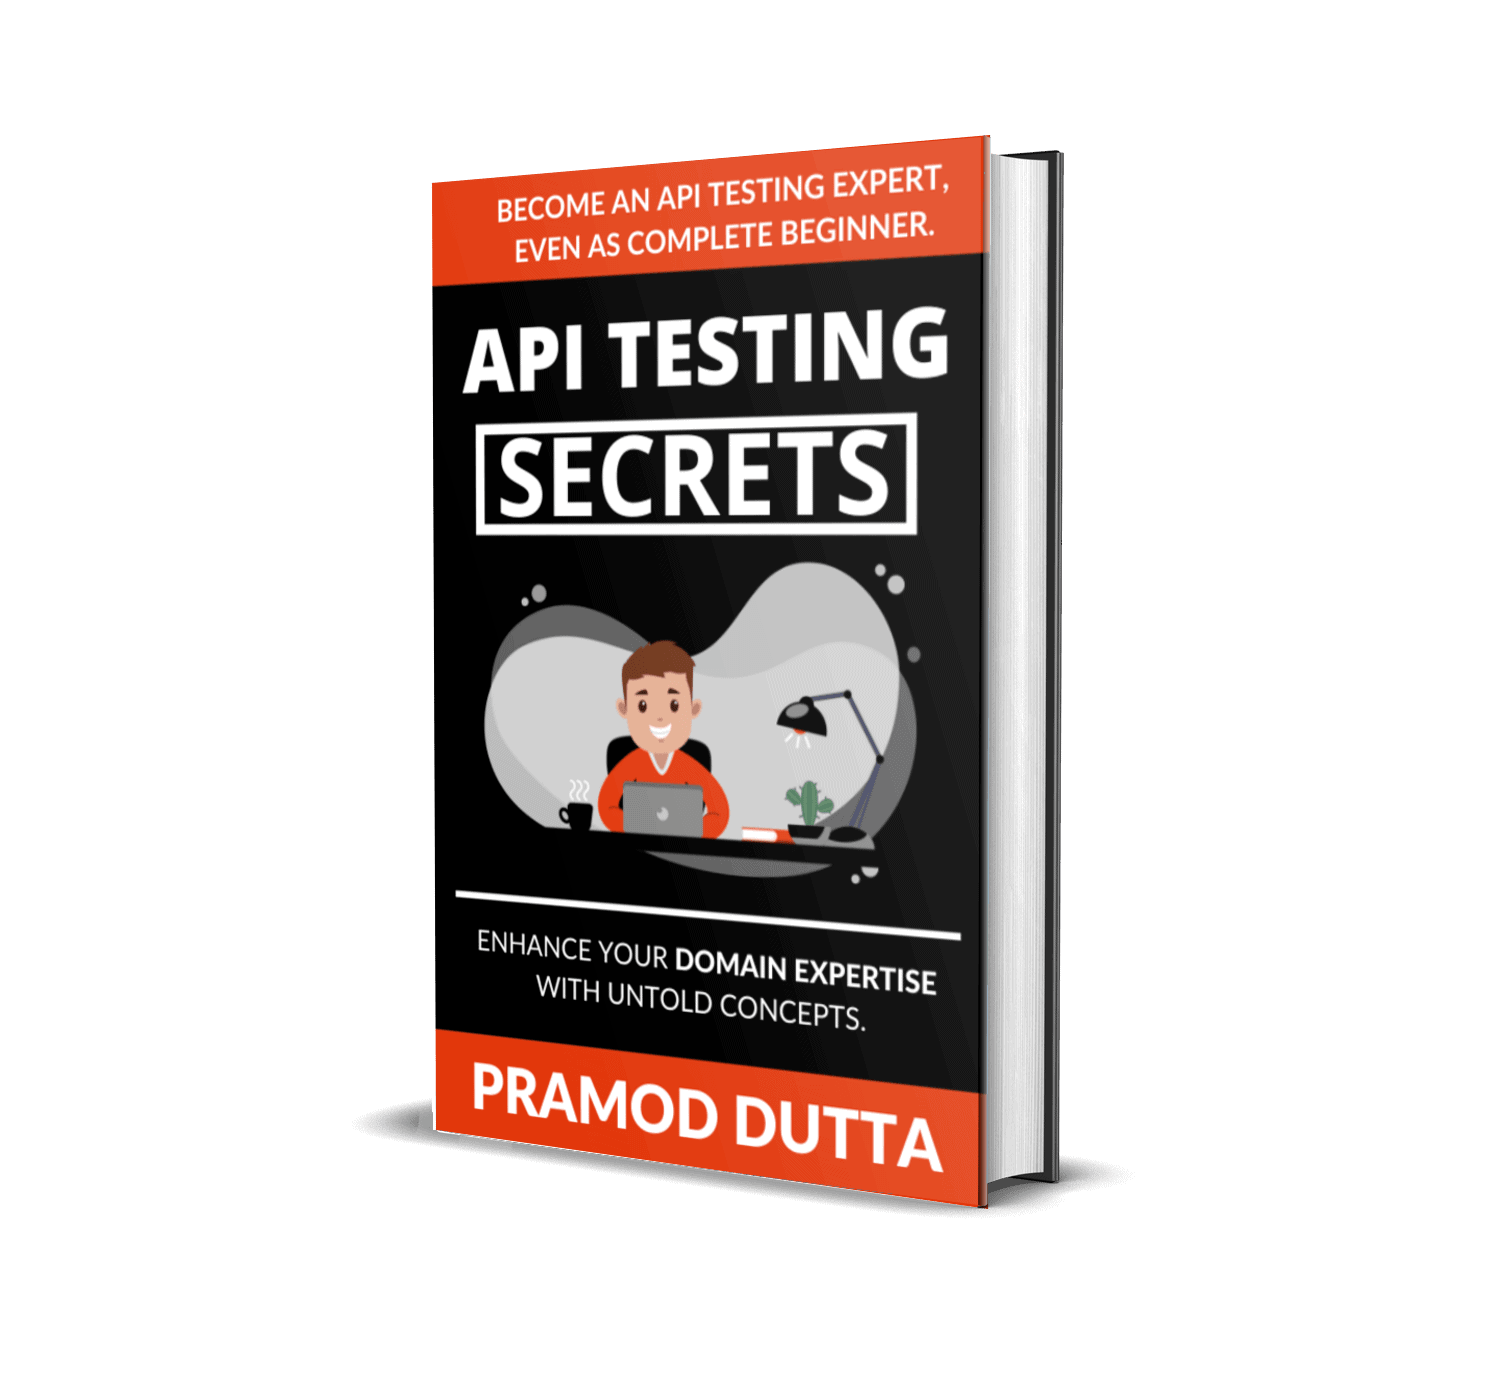 API Testing Secrets book cover